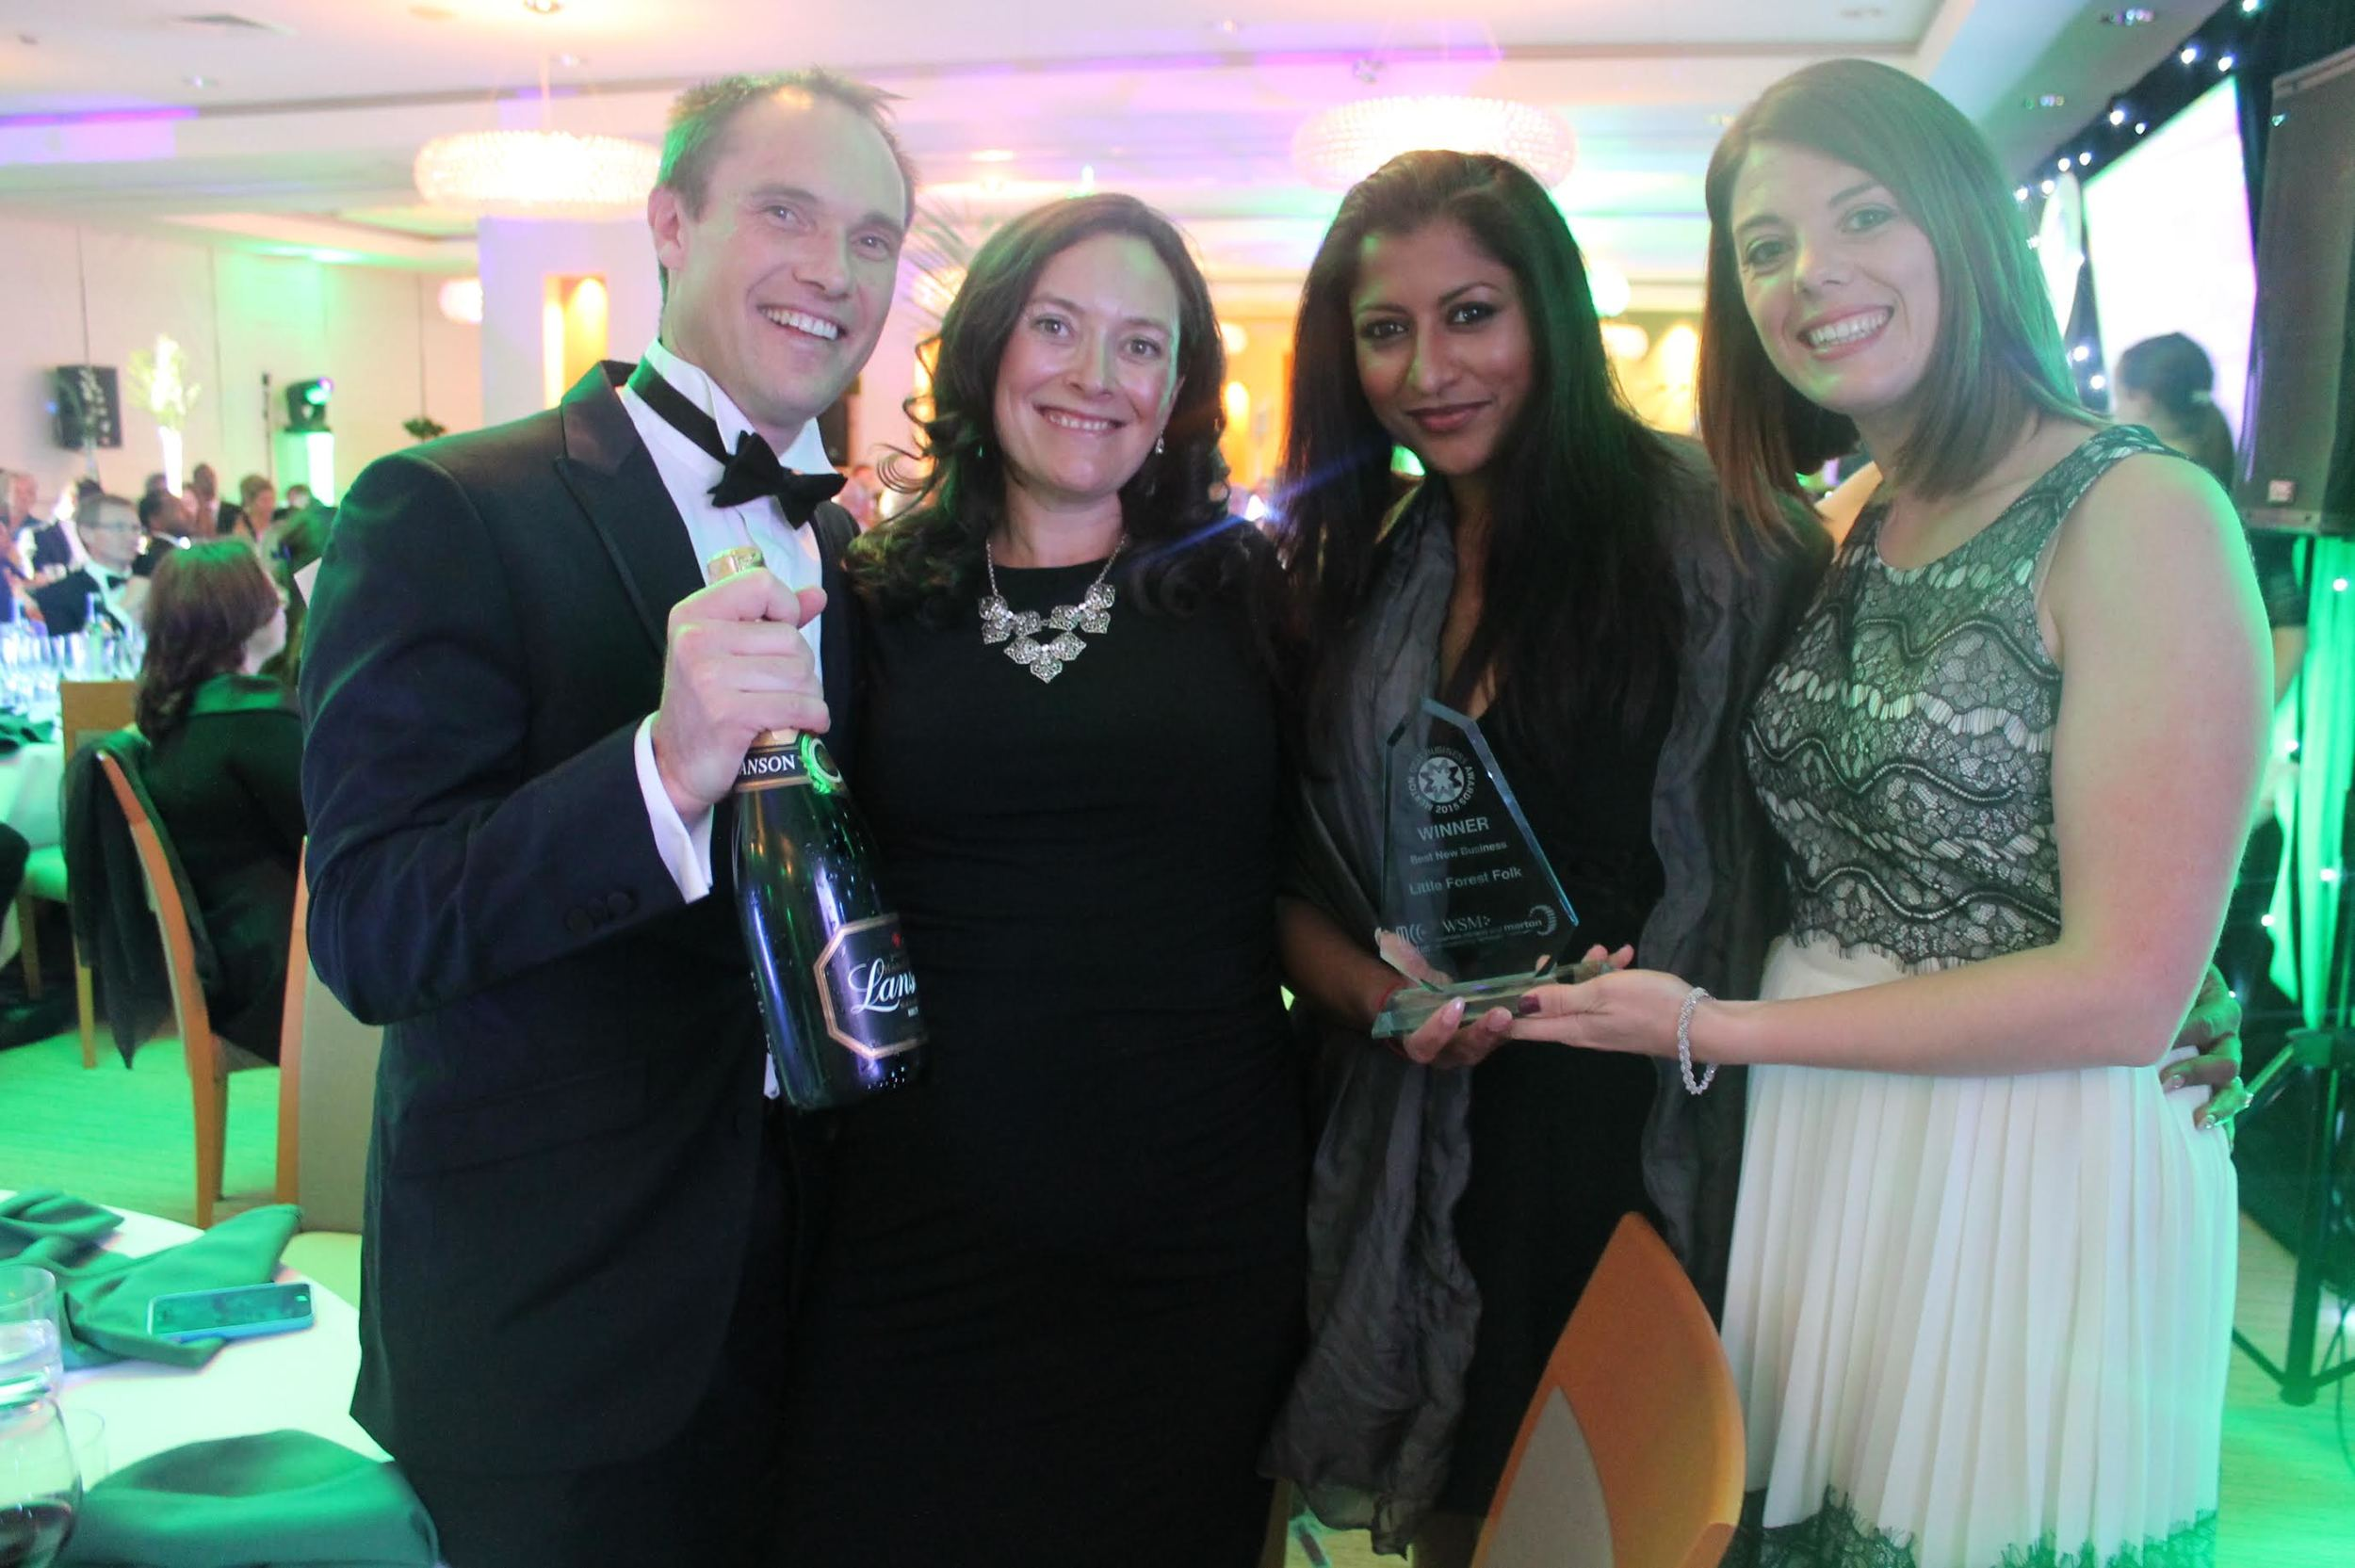 All glammed up at the Merton's best business awards ceremony - no mud in sight ;-)